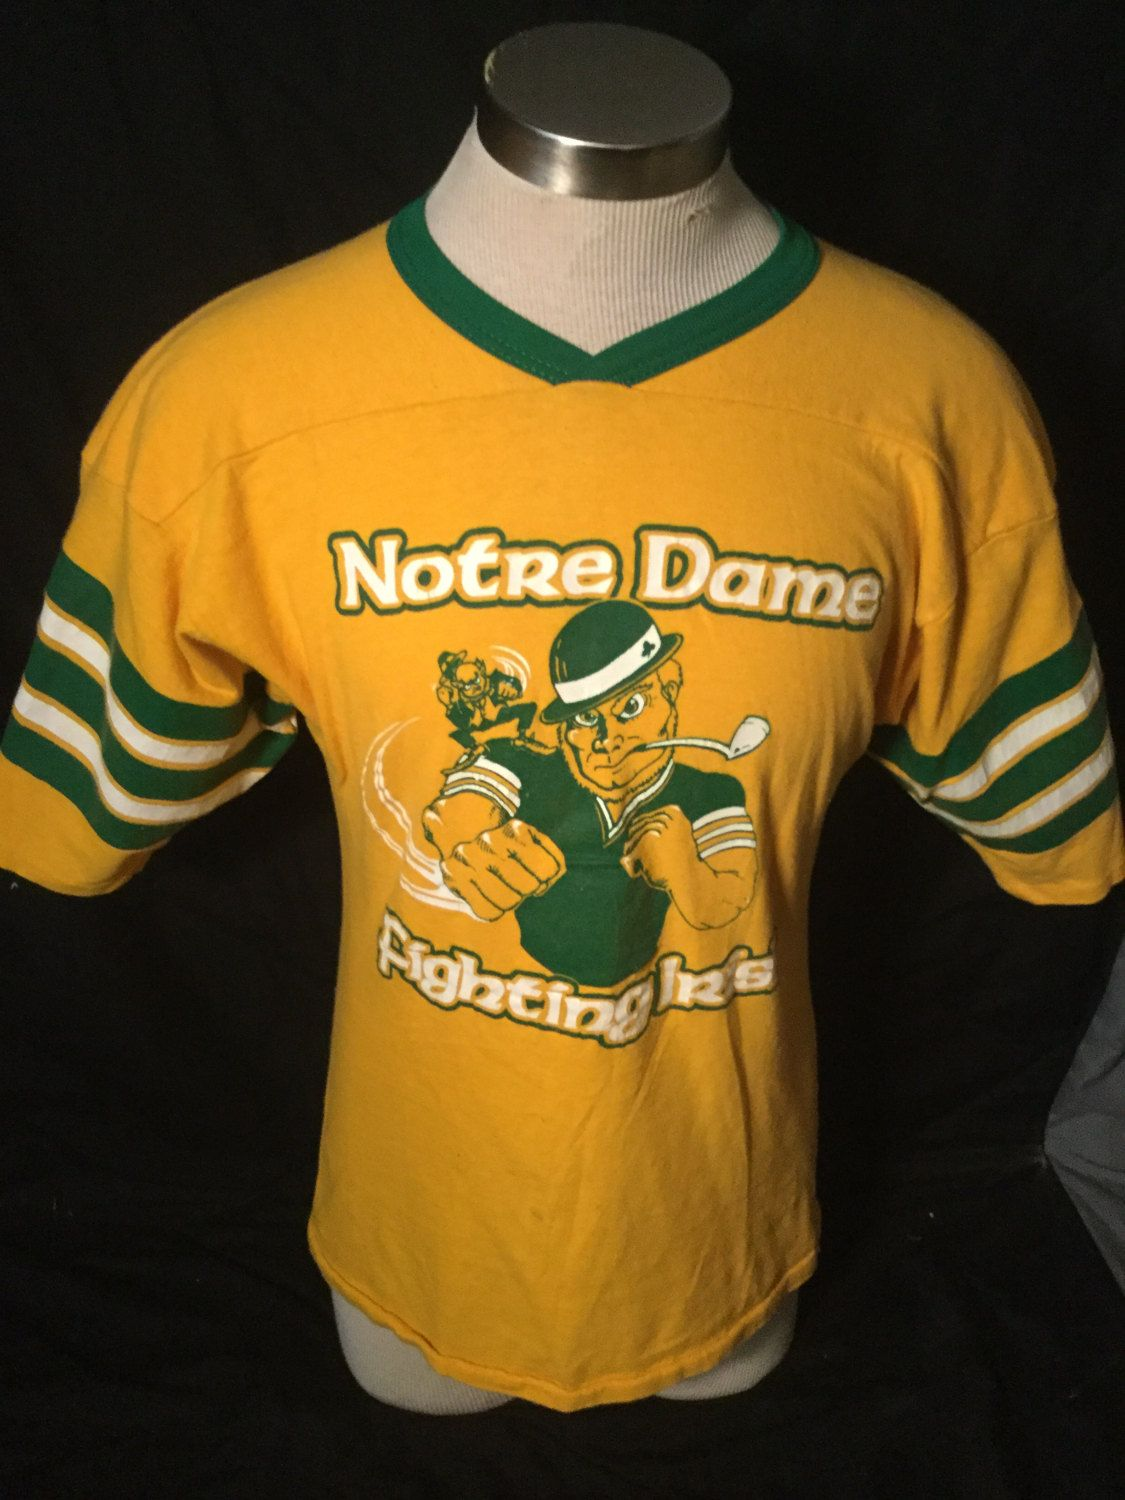 Vintage 1980 s Notre Dame Fighting Irish Bike Jersey T-Shirt by  413productions on Etsy cf1274dbe